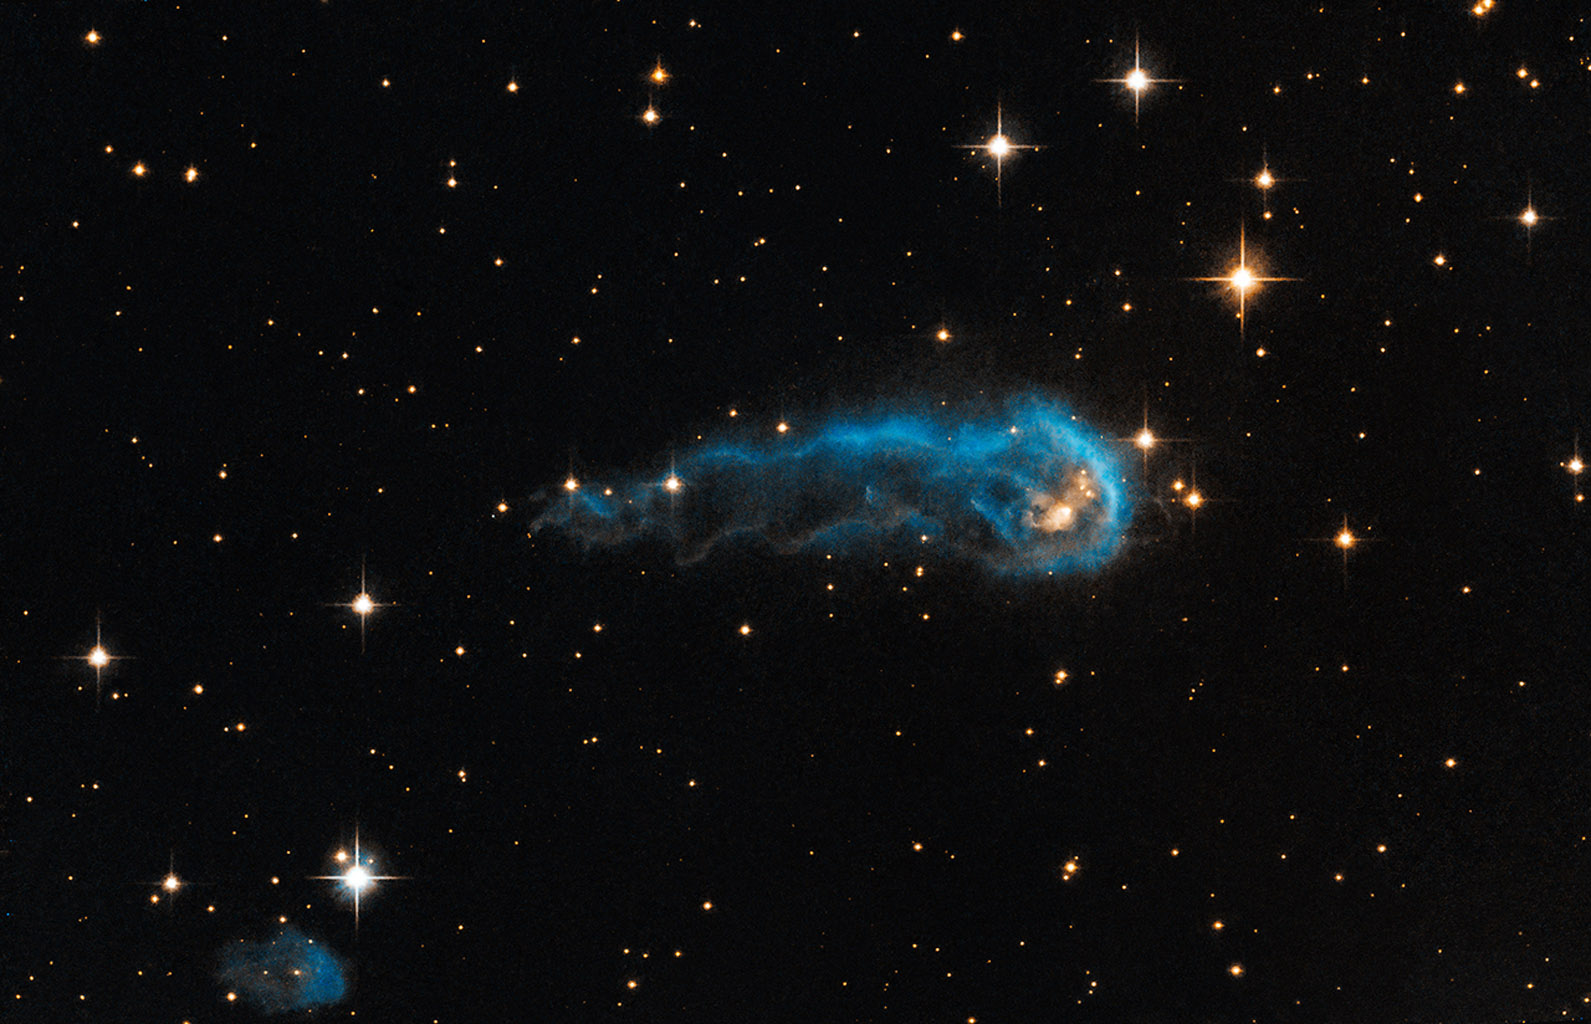 Known as IRAS 20324+4057 ('The Tadpole'), taken by NASA's Hubble Space Telescope in 2012, shows a bright blue tadpole as it appears to swim through the inky blackness of space.